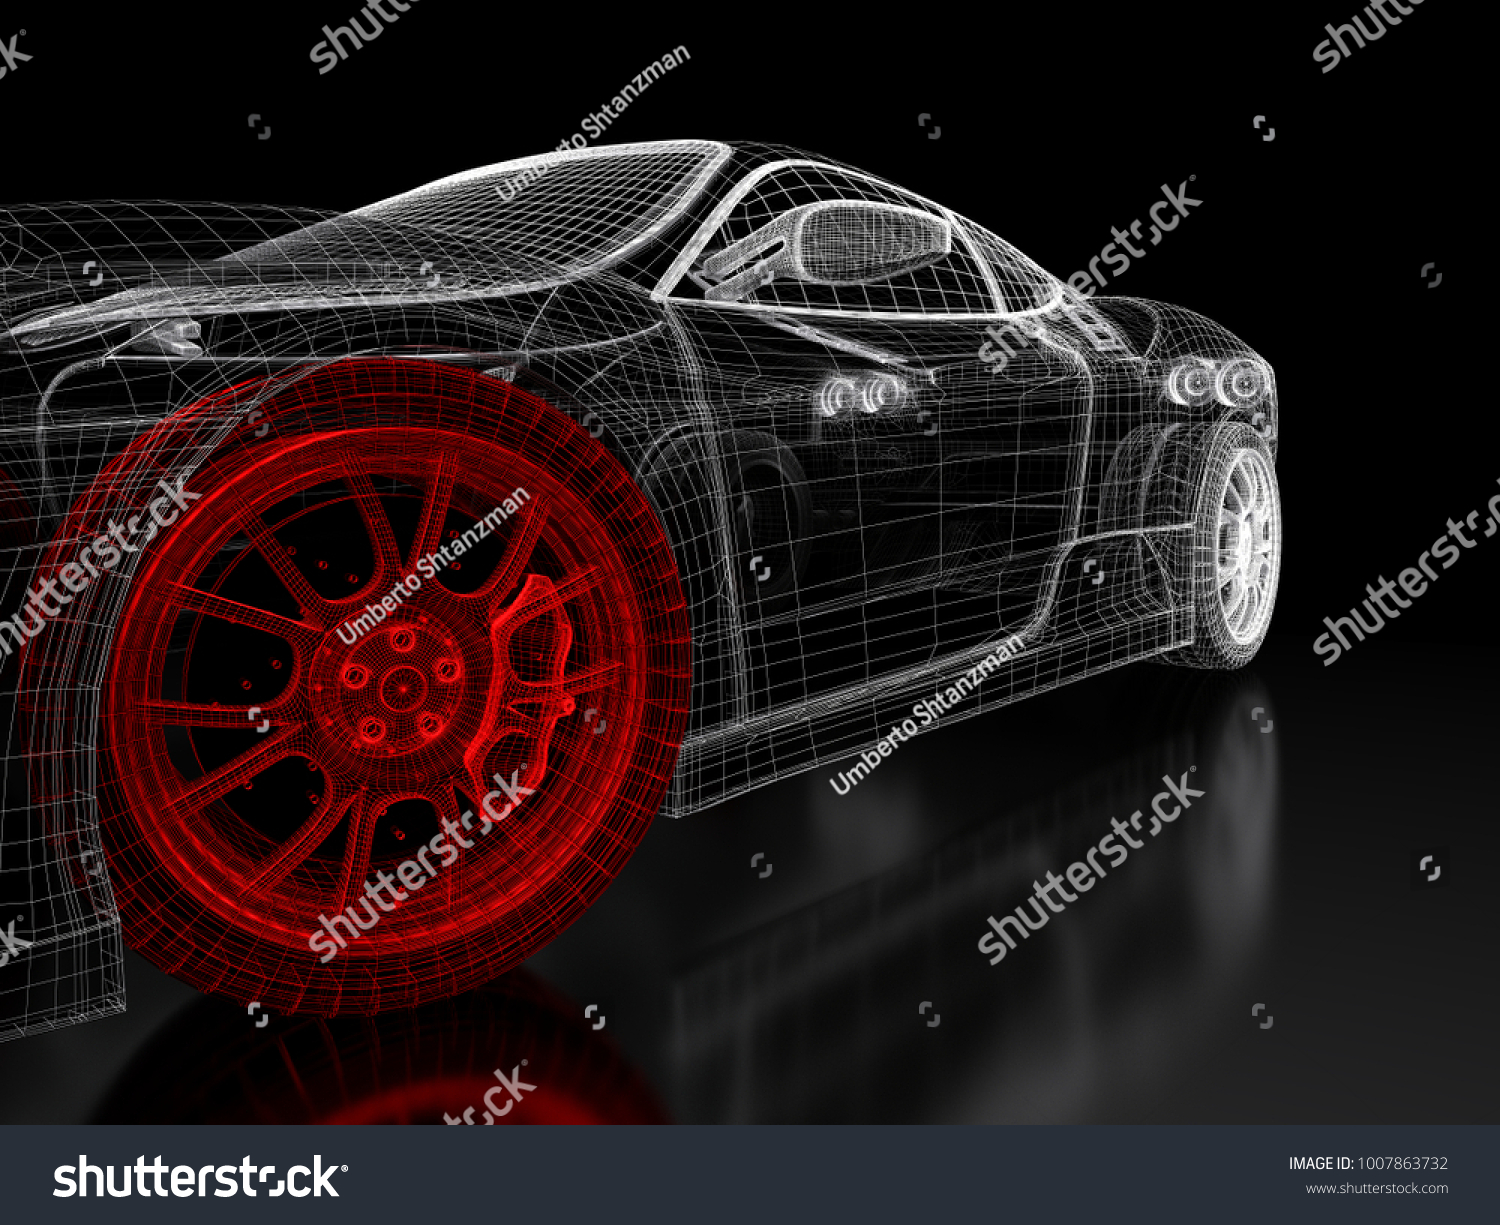 Car vehicle 3d blueprint mesh model ilustracin en stock 1007863732 car vehicle 3d blueprint mesh model with a red wheel tire on a black background malvernweather Choice Image